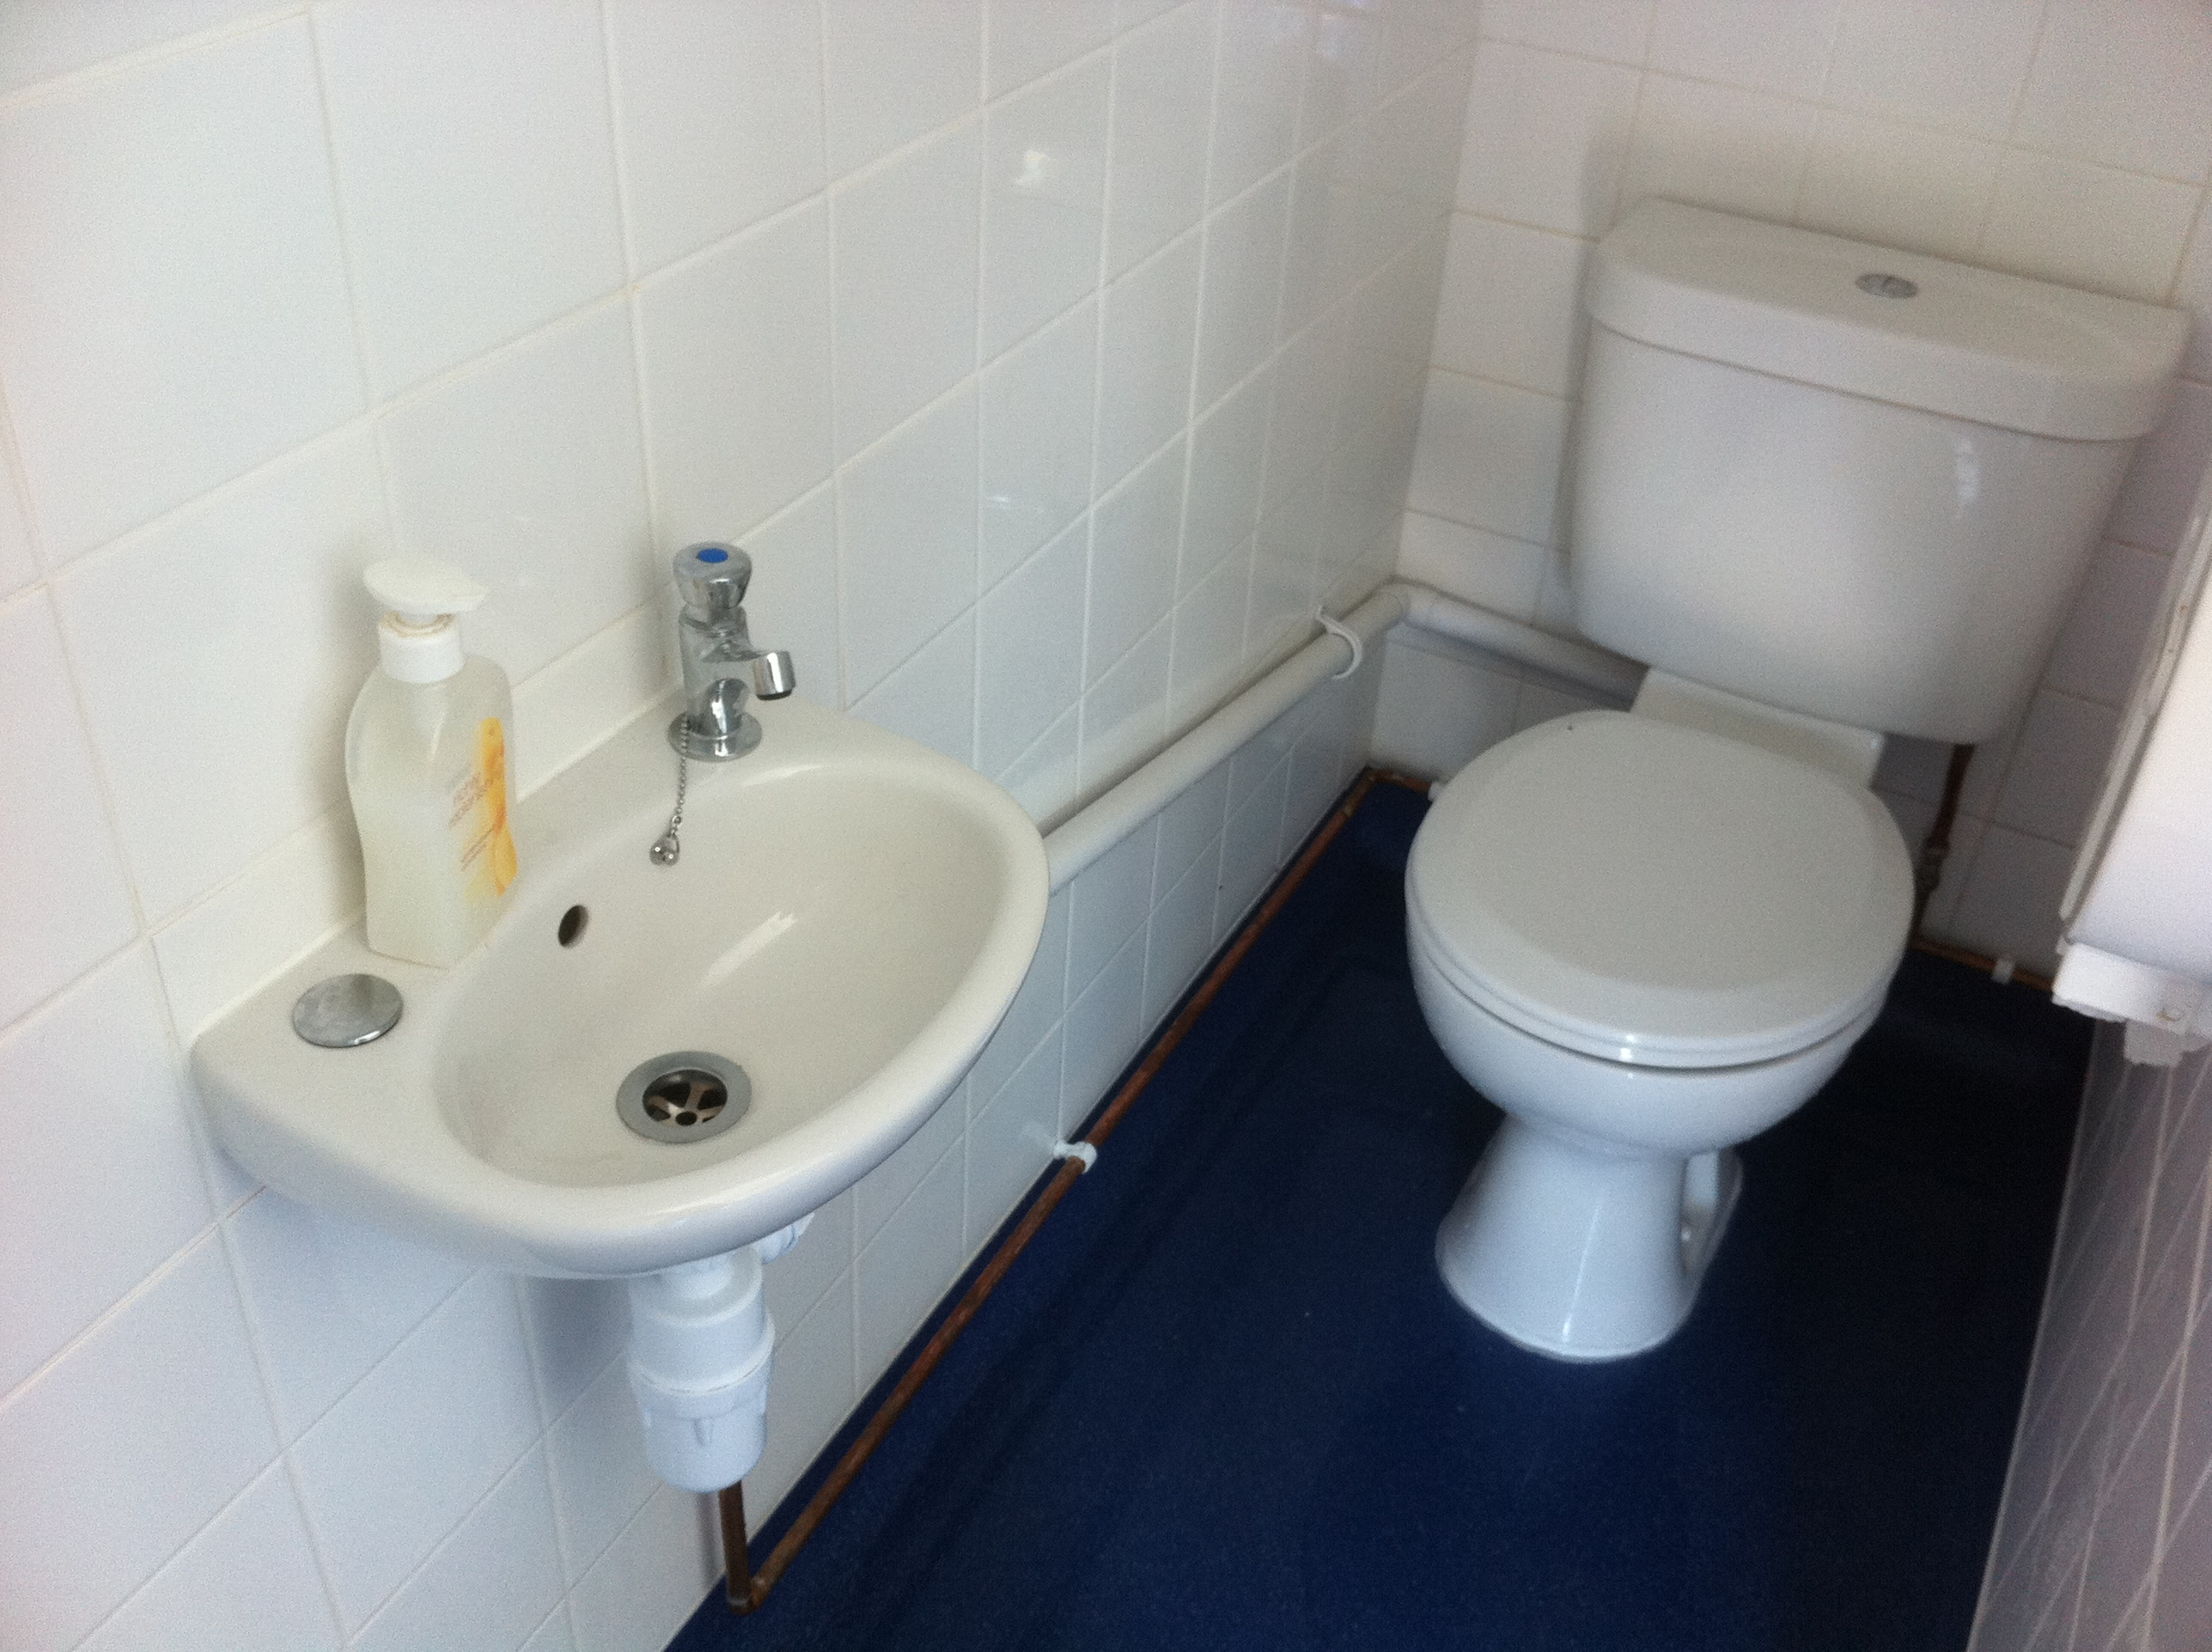 New Sink and Toilet For Boys.